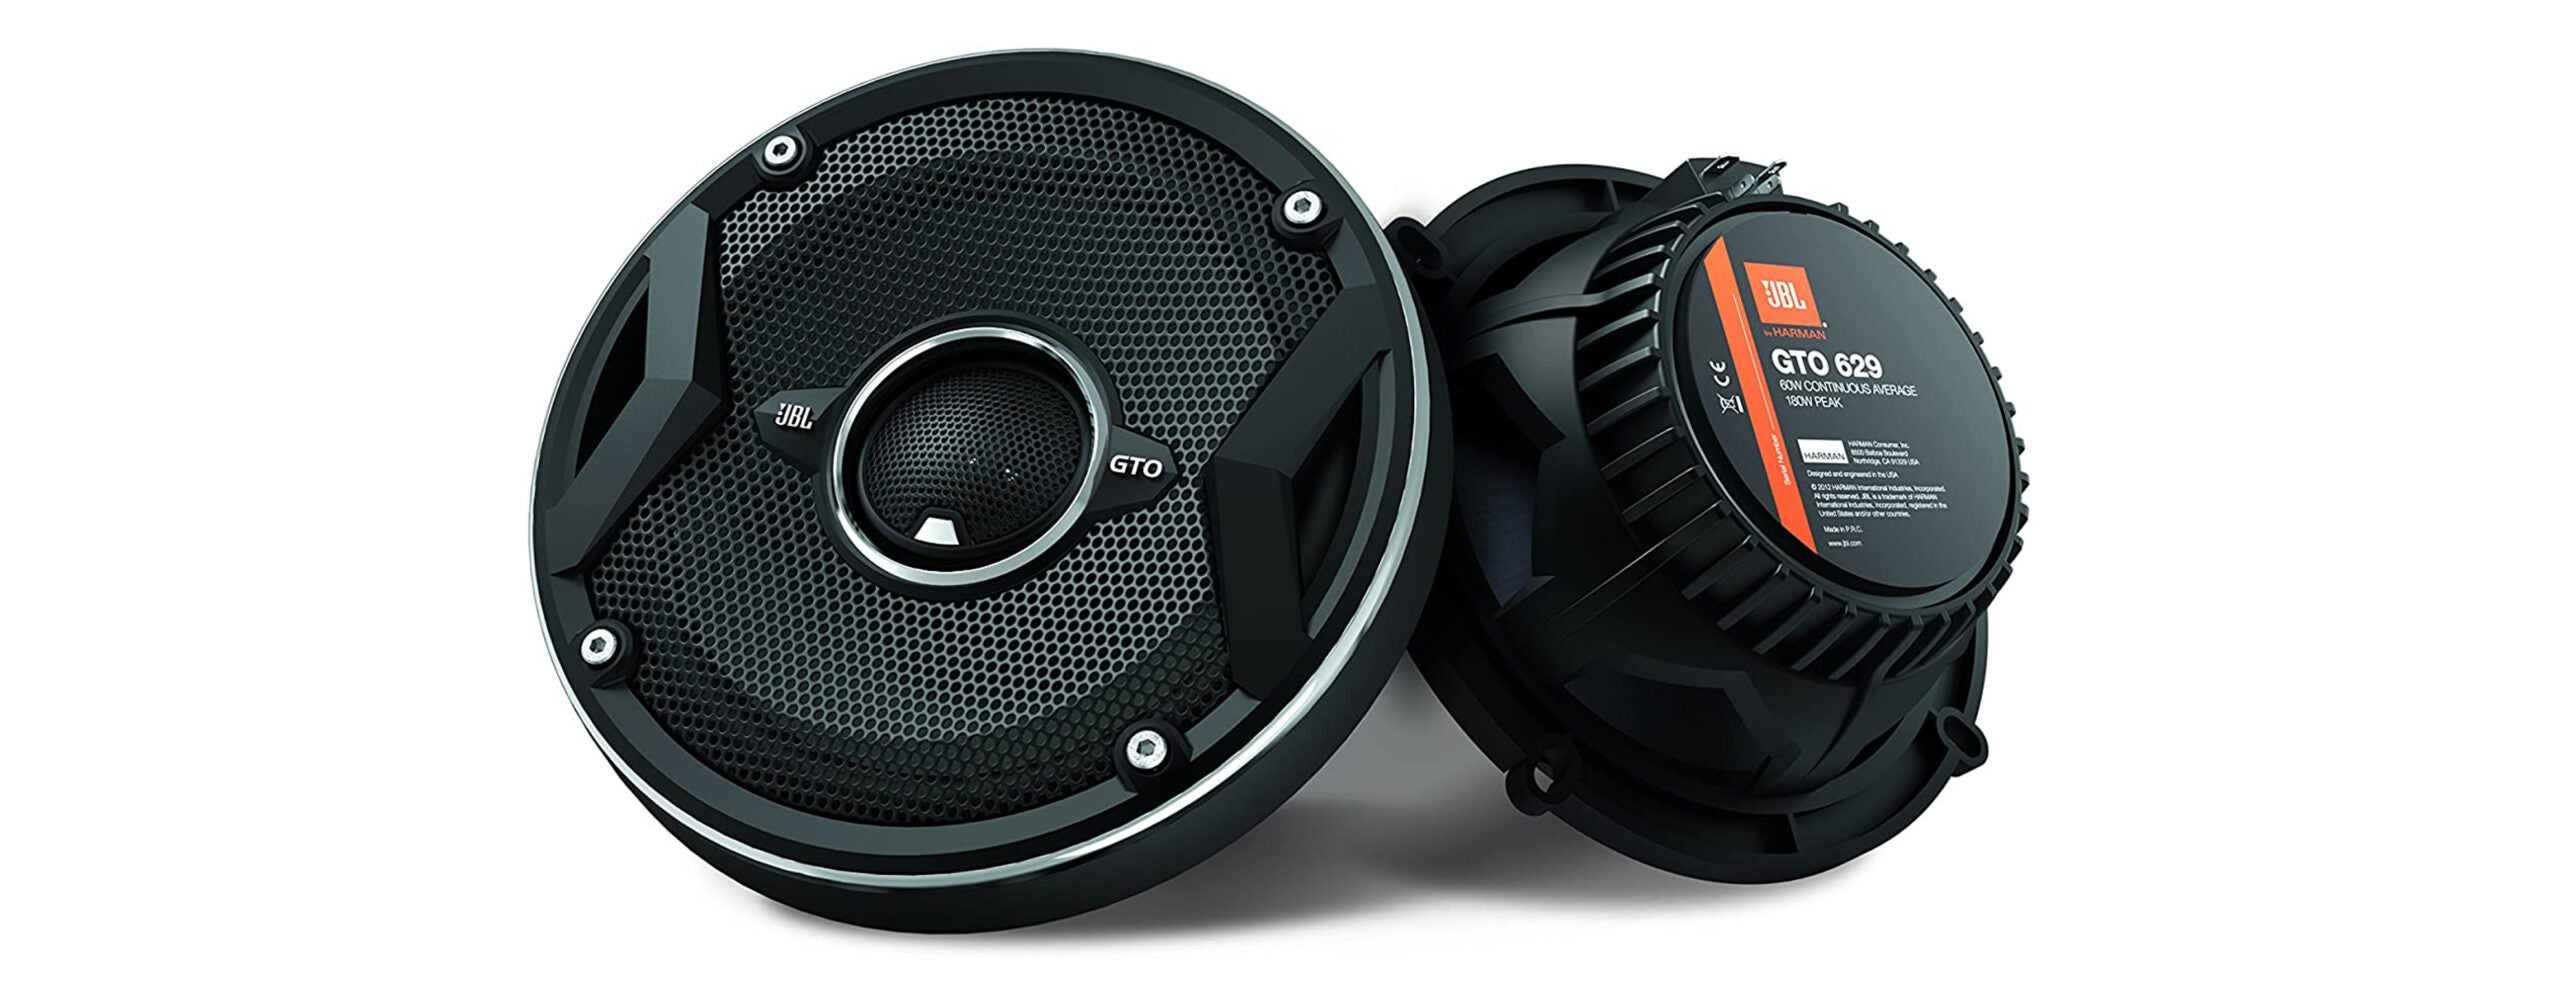 The Best Car Speakers for Bass (Review and Buying Guide) in 2021